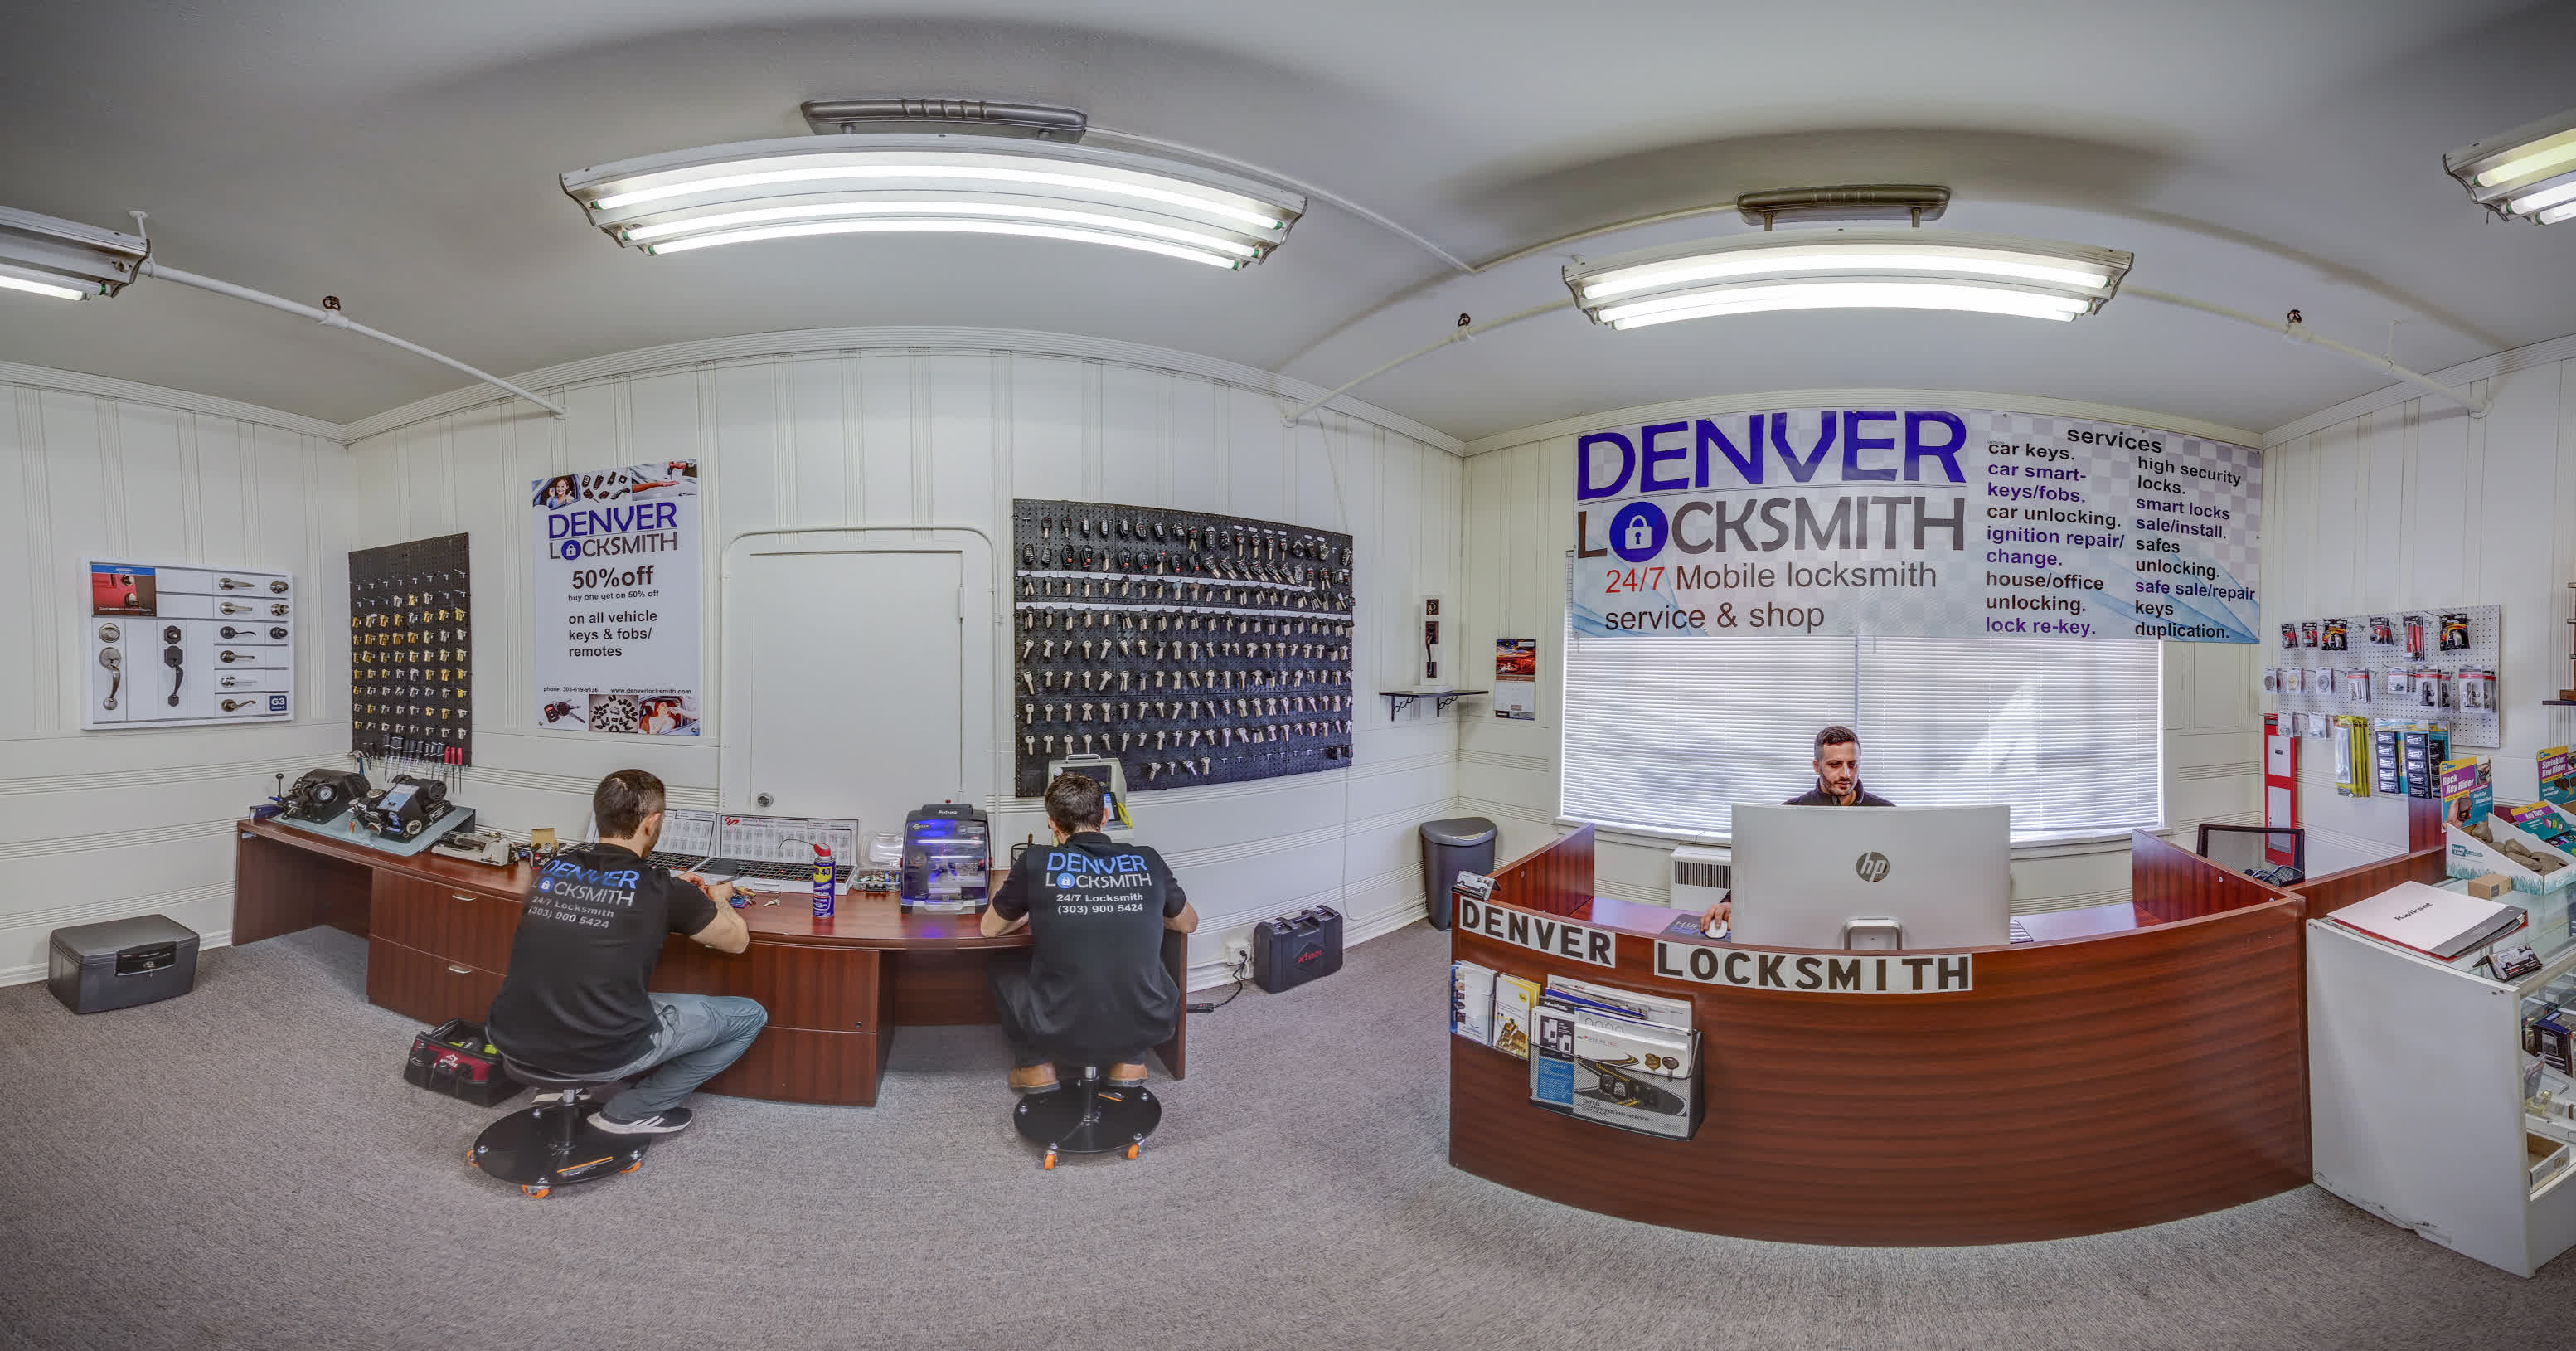 Denver Locksmith shop and mobile service